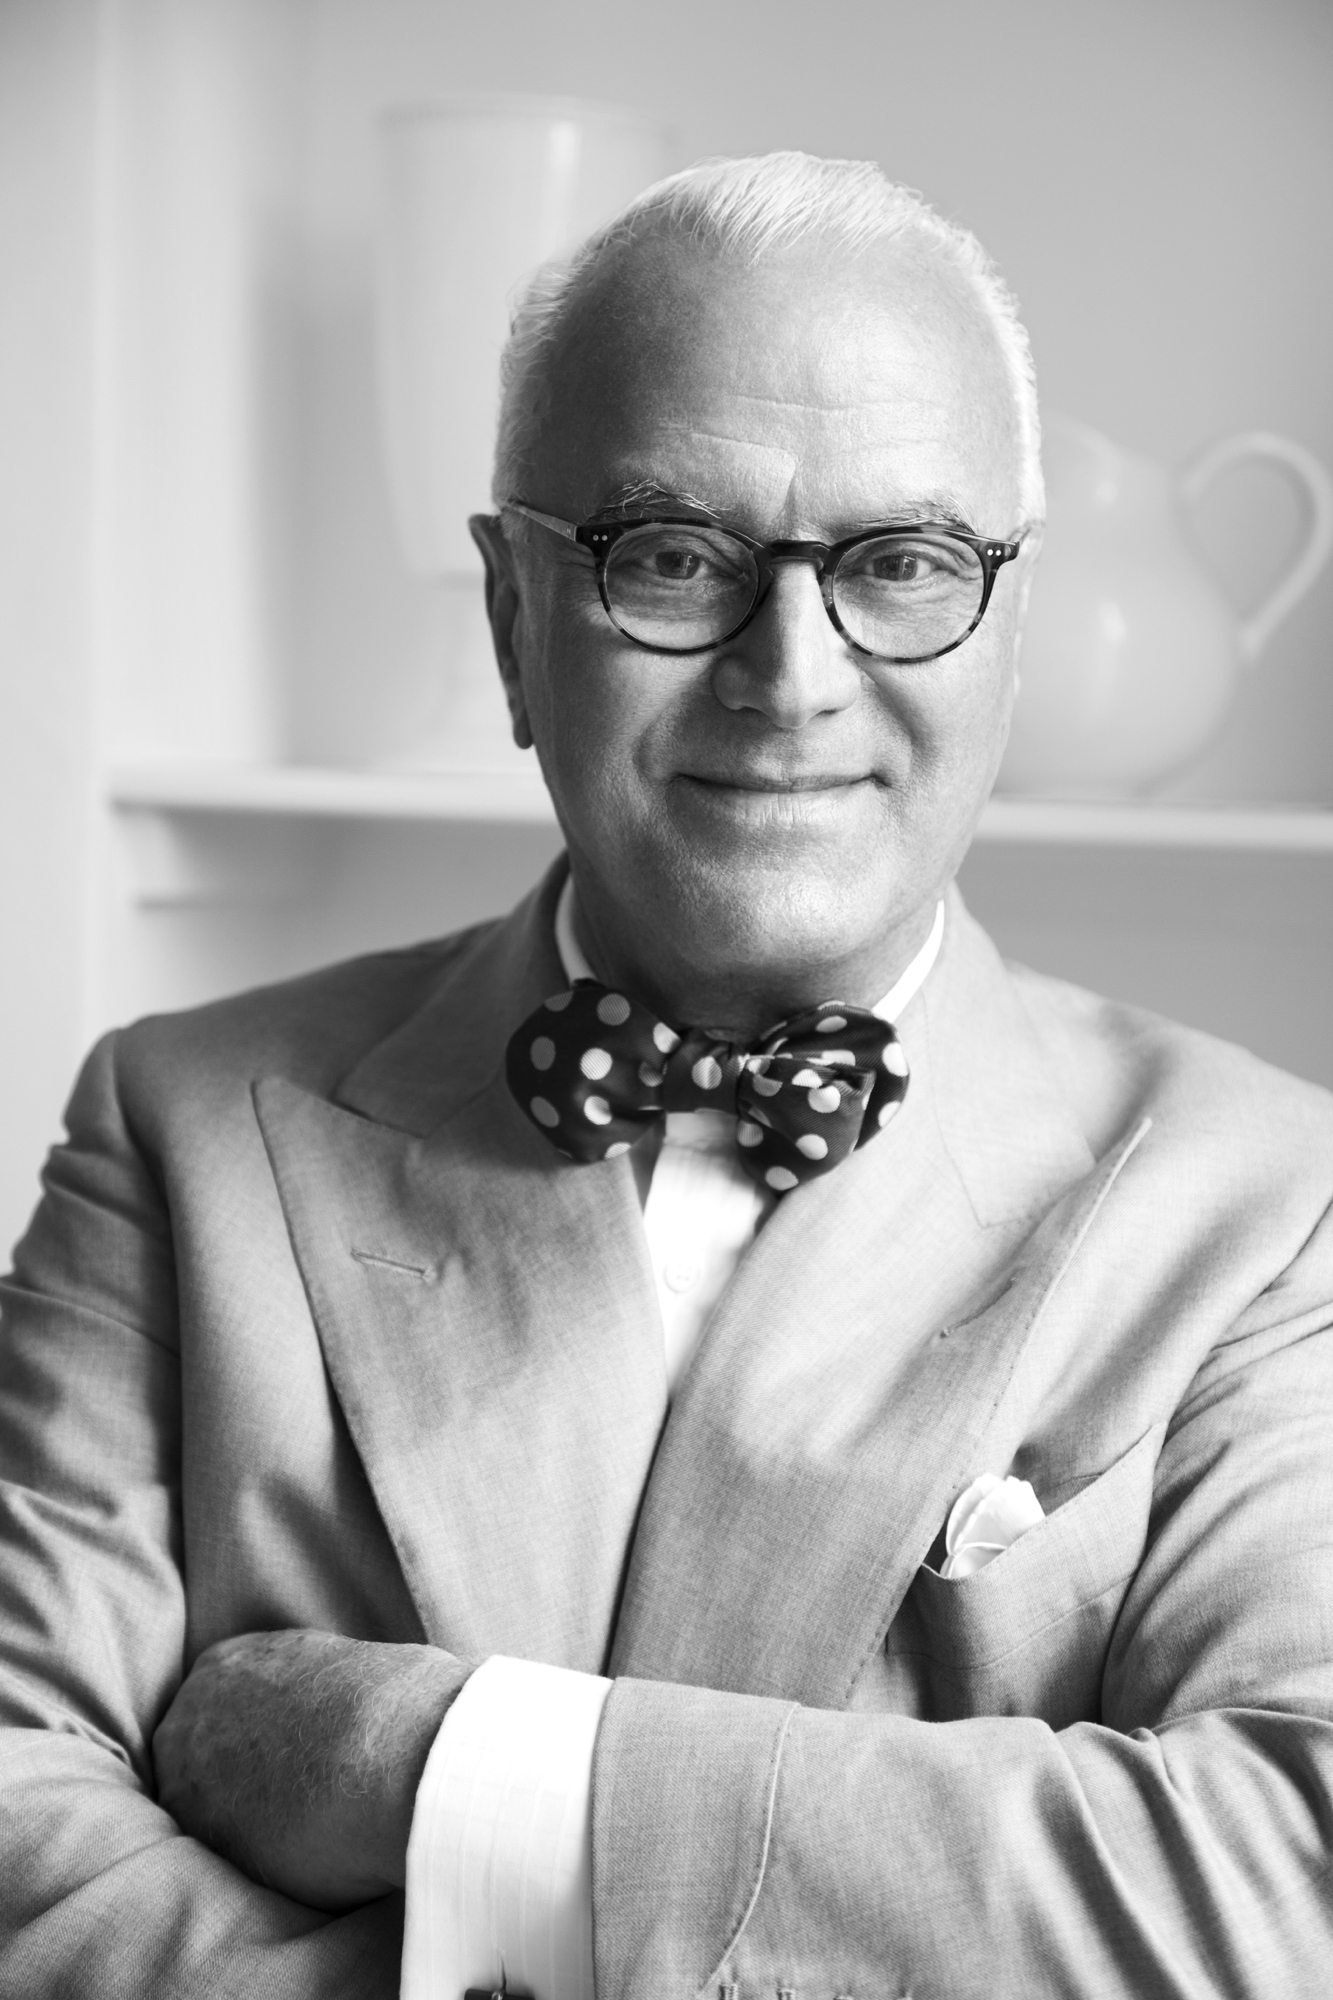 Manolo Blahnik is as colourful as his shoes